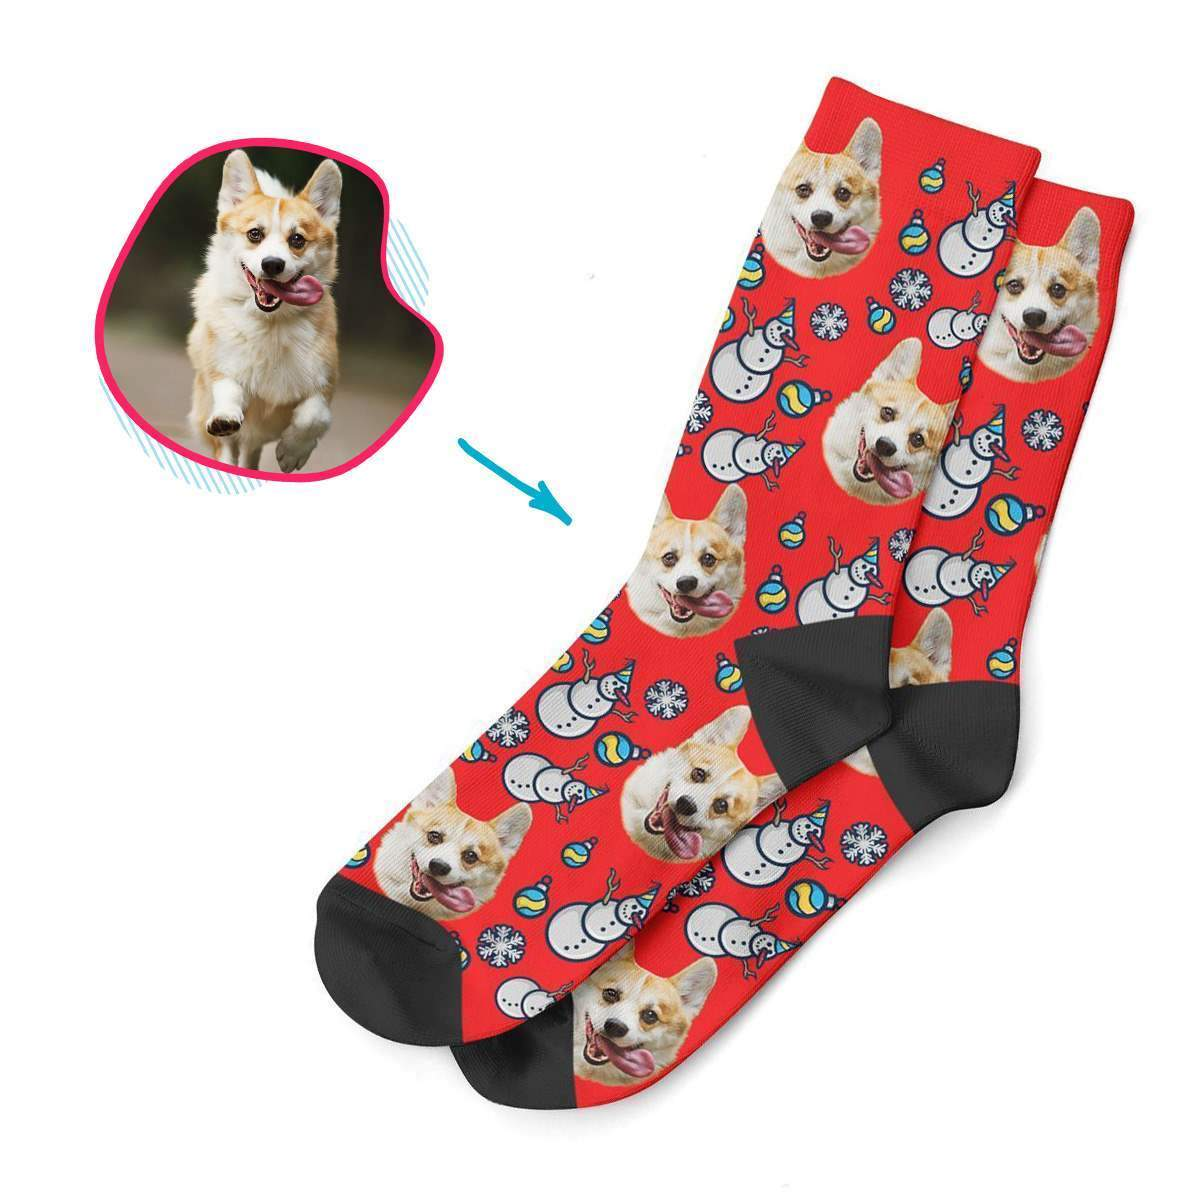 red Snowman socks personalized with photo of face printed on them